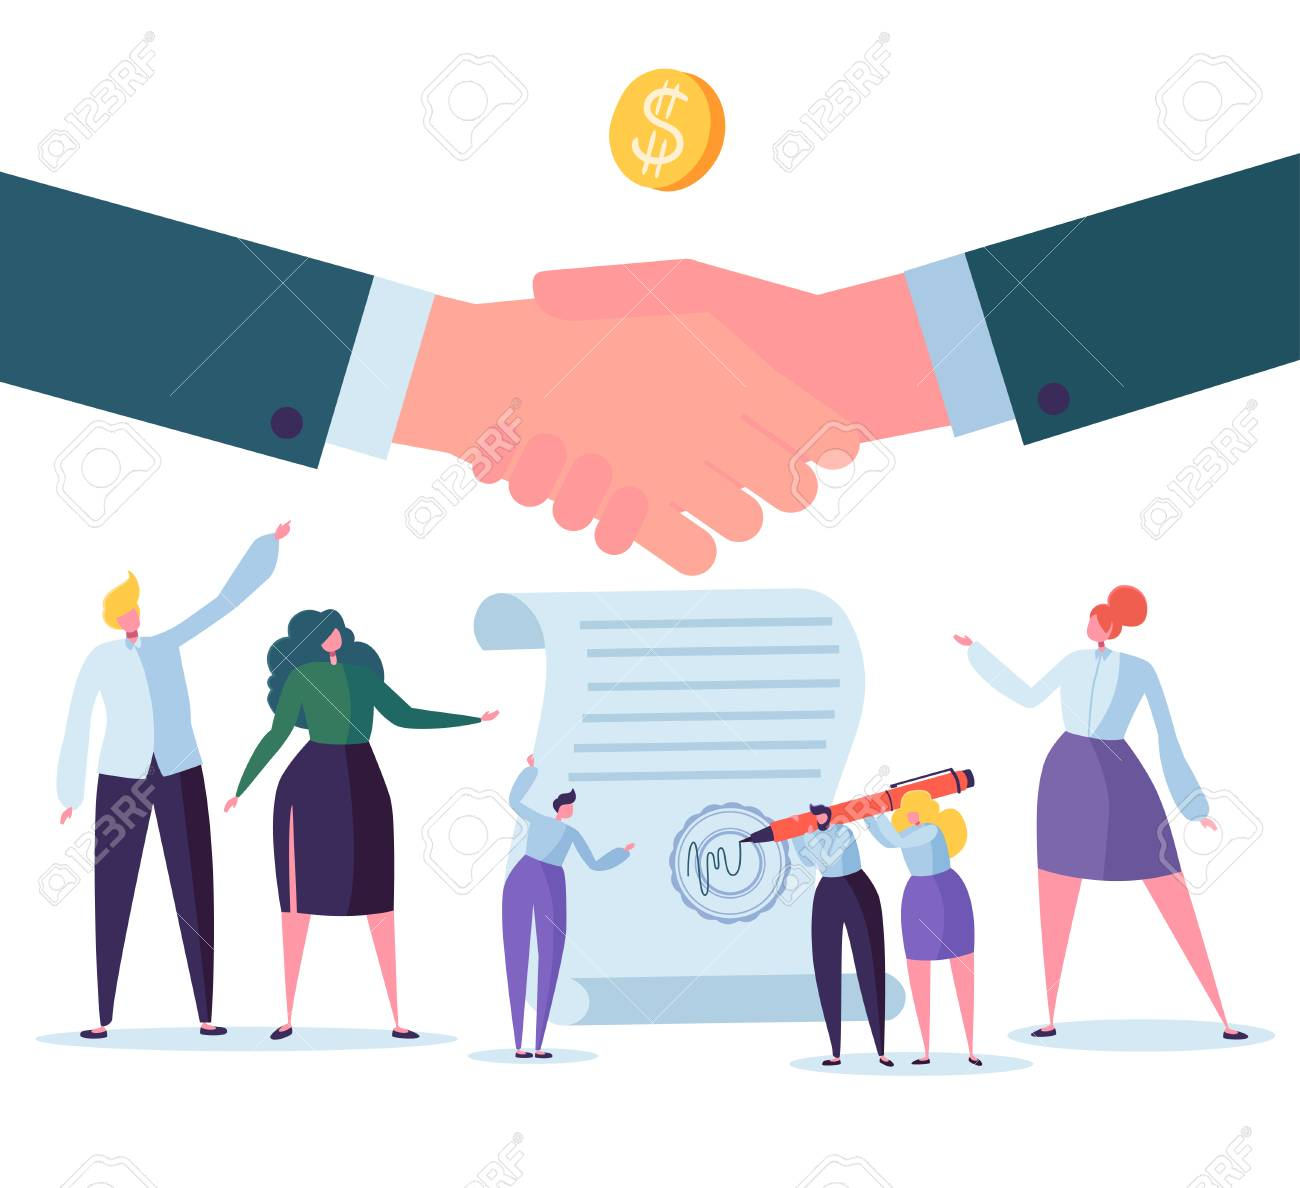 Handshake Business Agreement. Flat People Characters Signing Contract. Successful Partnership, Cooperation Concept. Vector illustration - 110153942